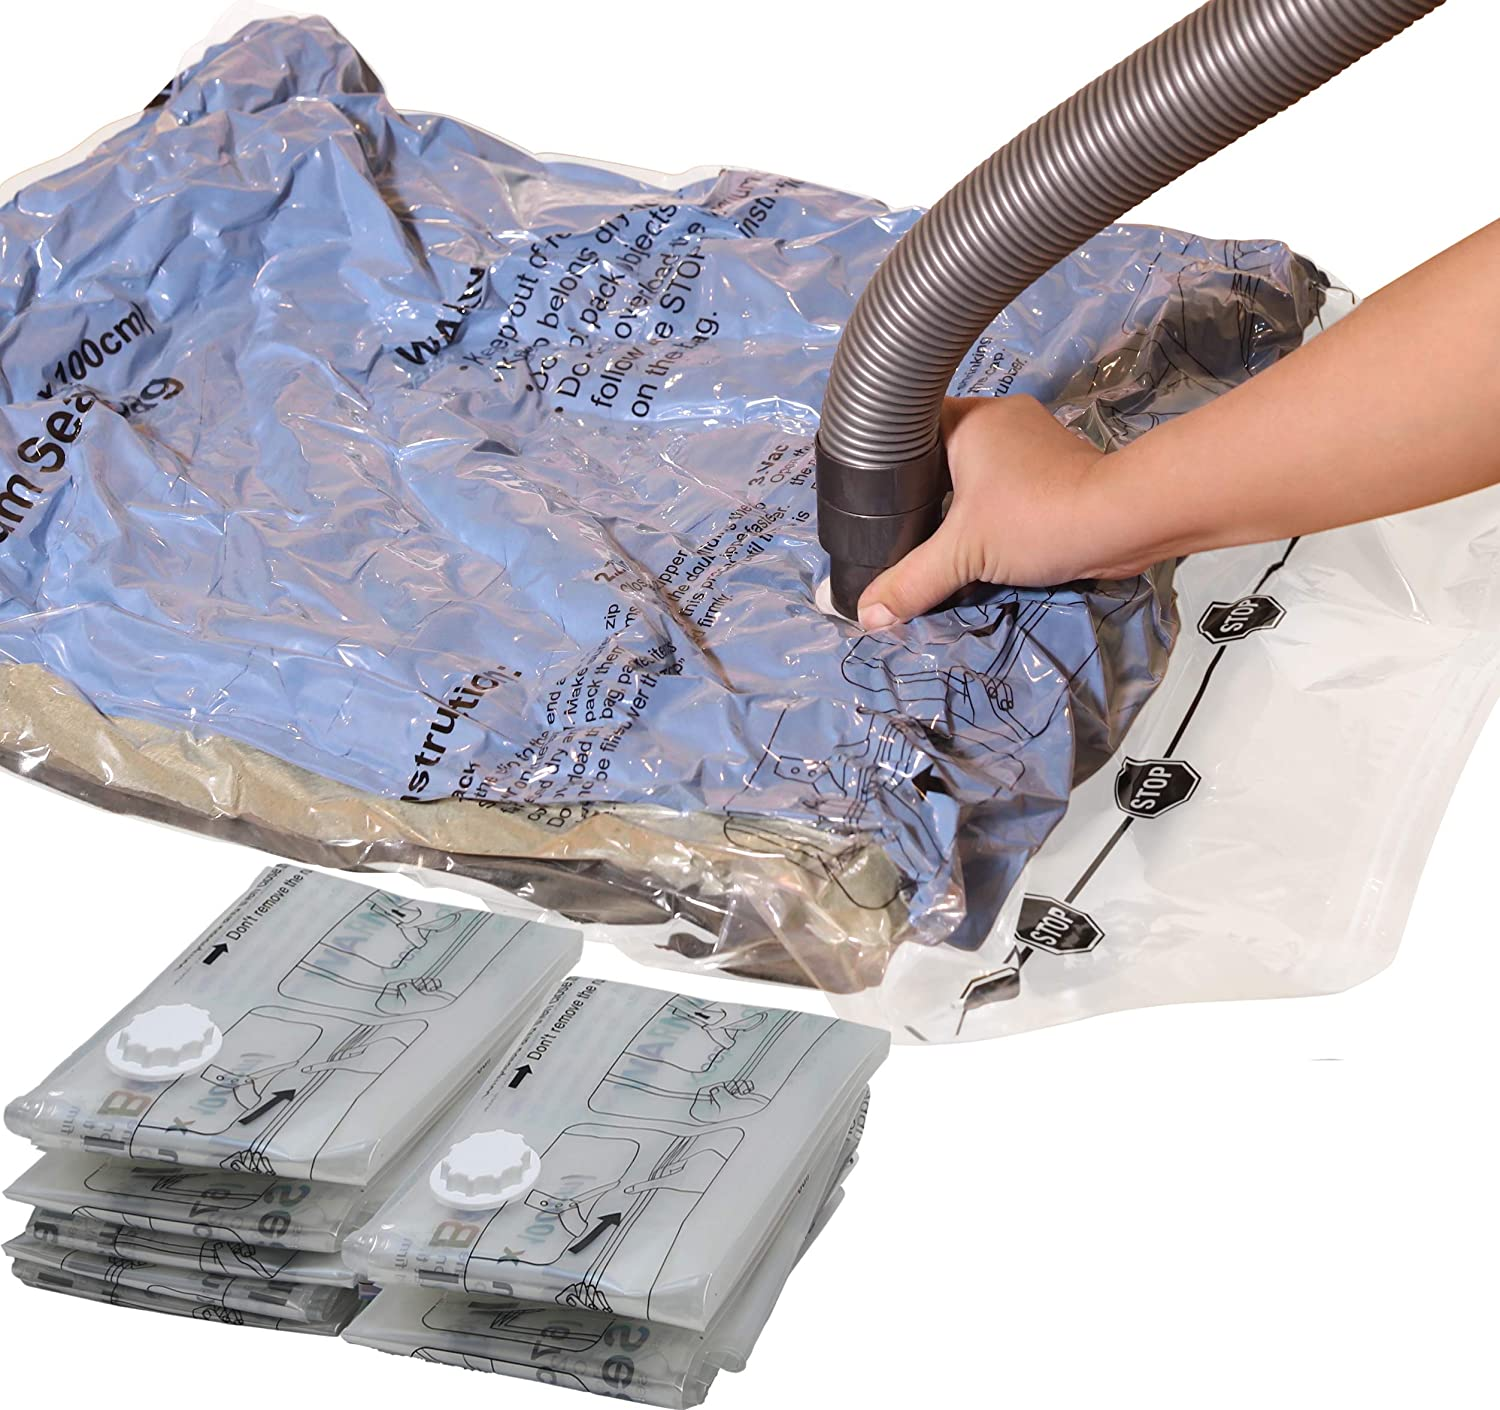 "7 Pack - Large Size Vacuum Storage Bags to Space Saver for Towel, Blanket, Clothes (21.5"" x 33.5"")"